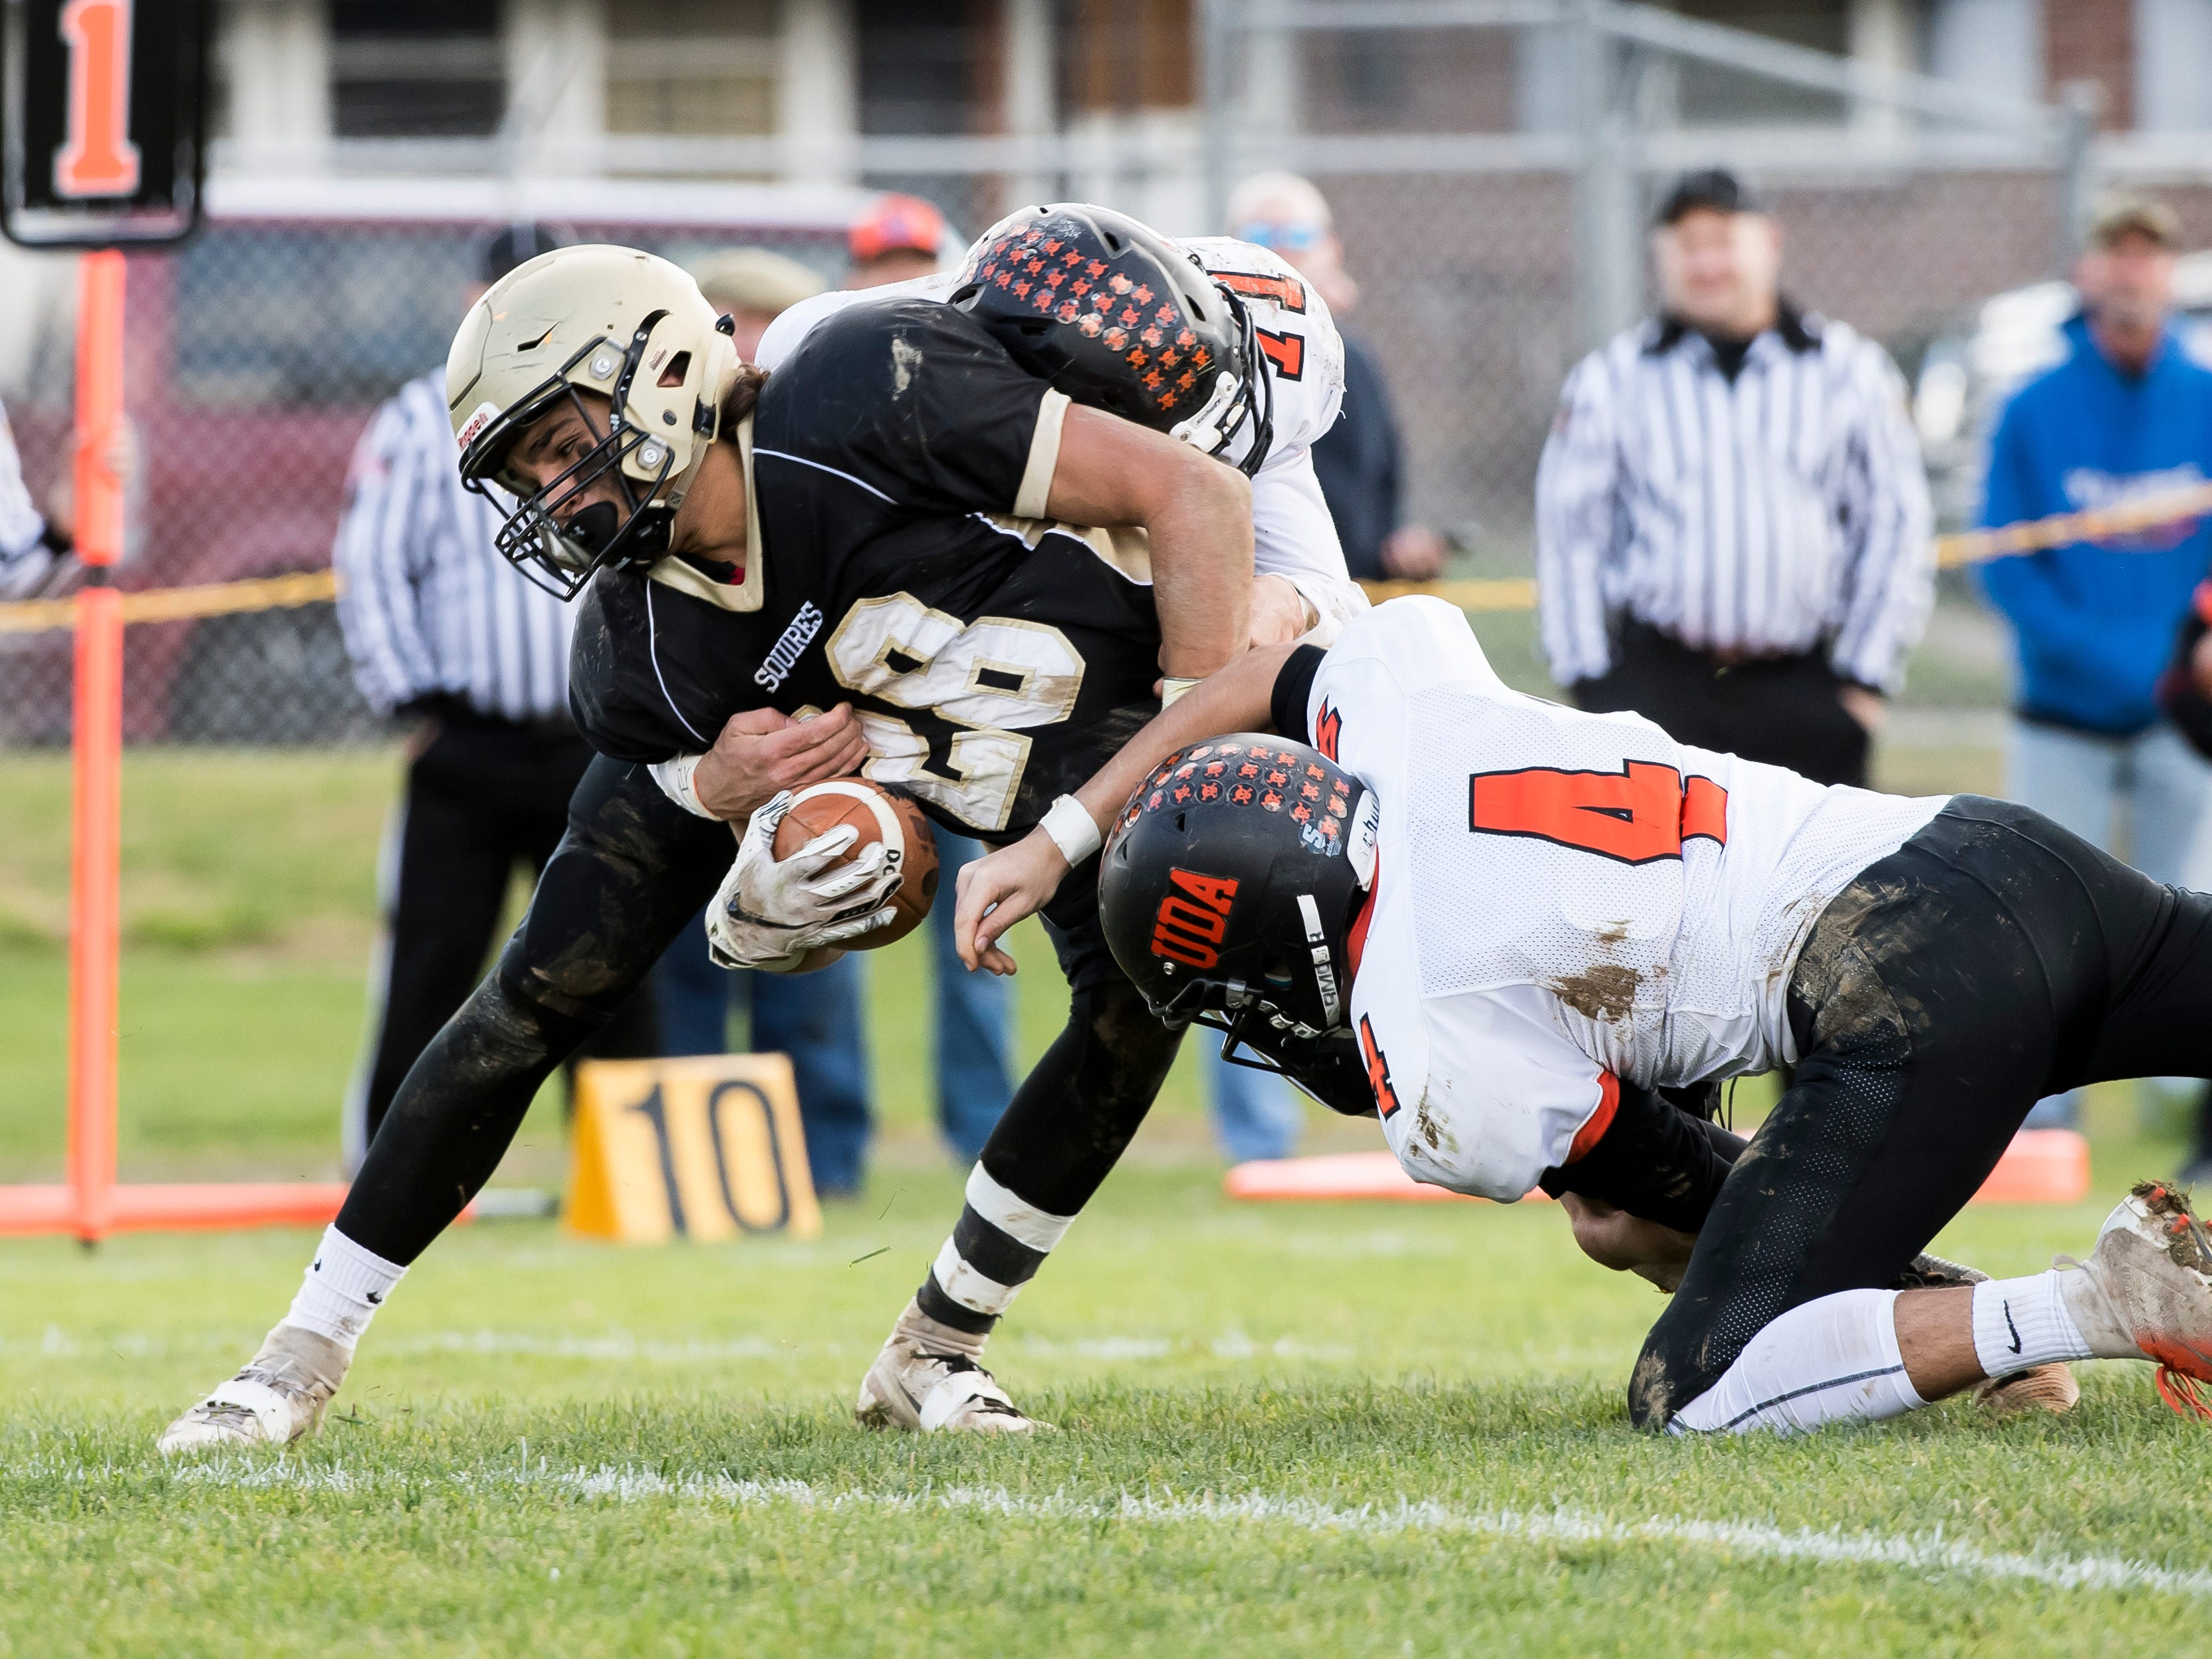 Delone Catholic's Joe Hernandez is tackled inches from the end zone while carrying the ball against Upper Dauphin during a District III Class 2A semifinal game on Saturday, November 3, 2018. The Squires would score on the next play and won the game 48-23.